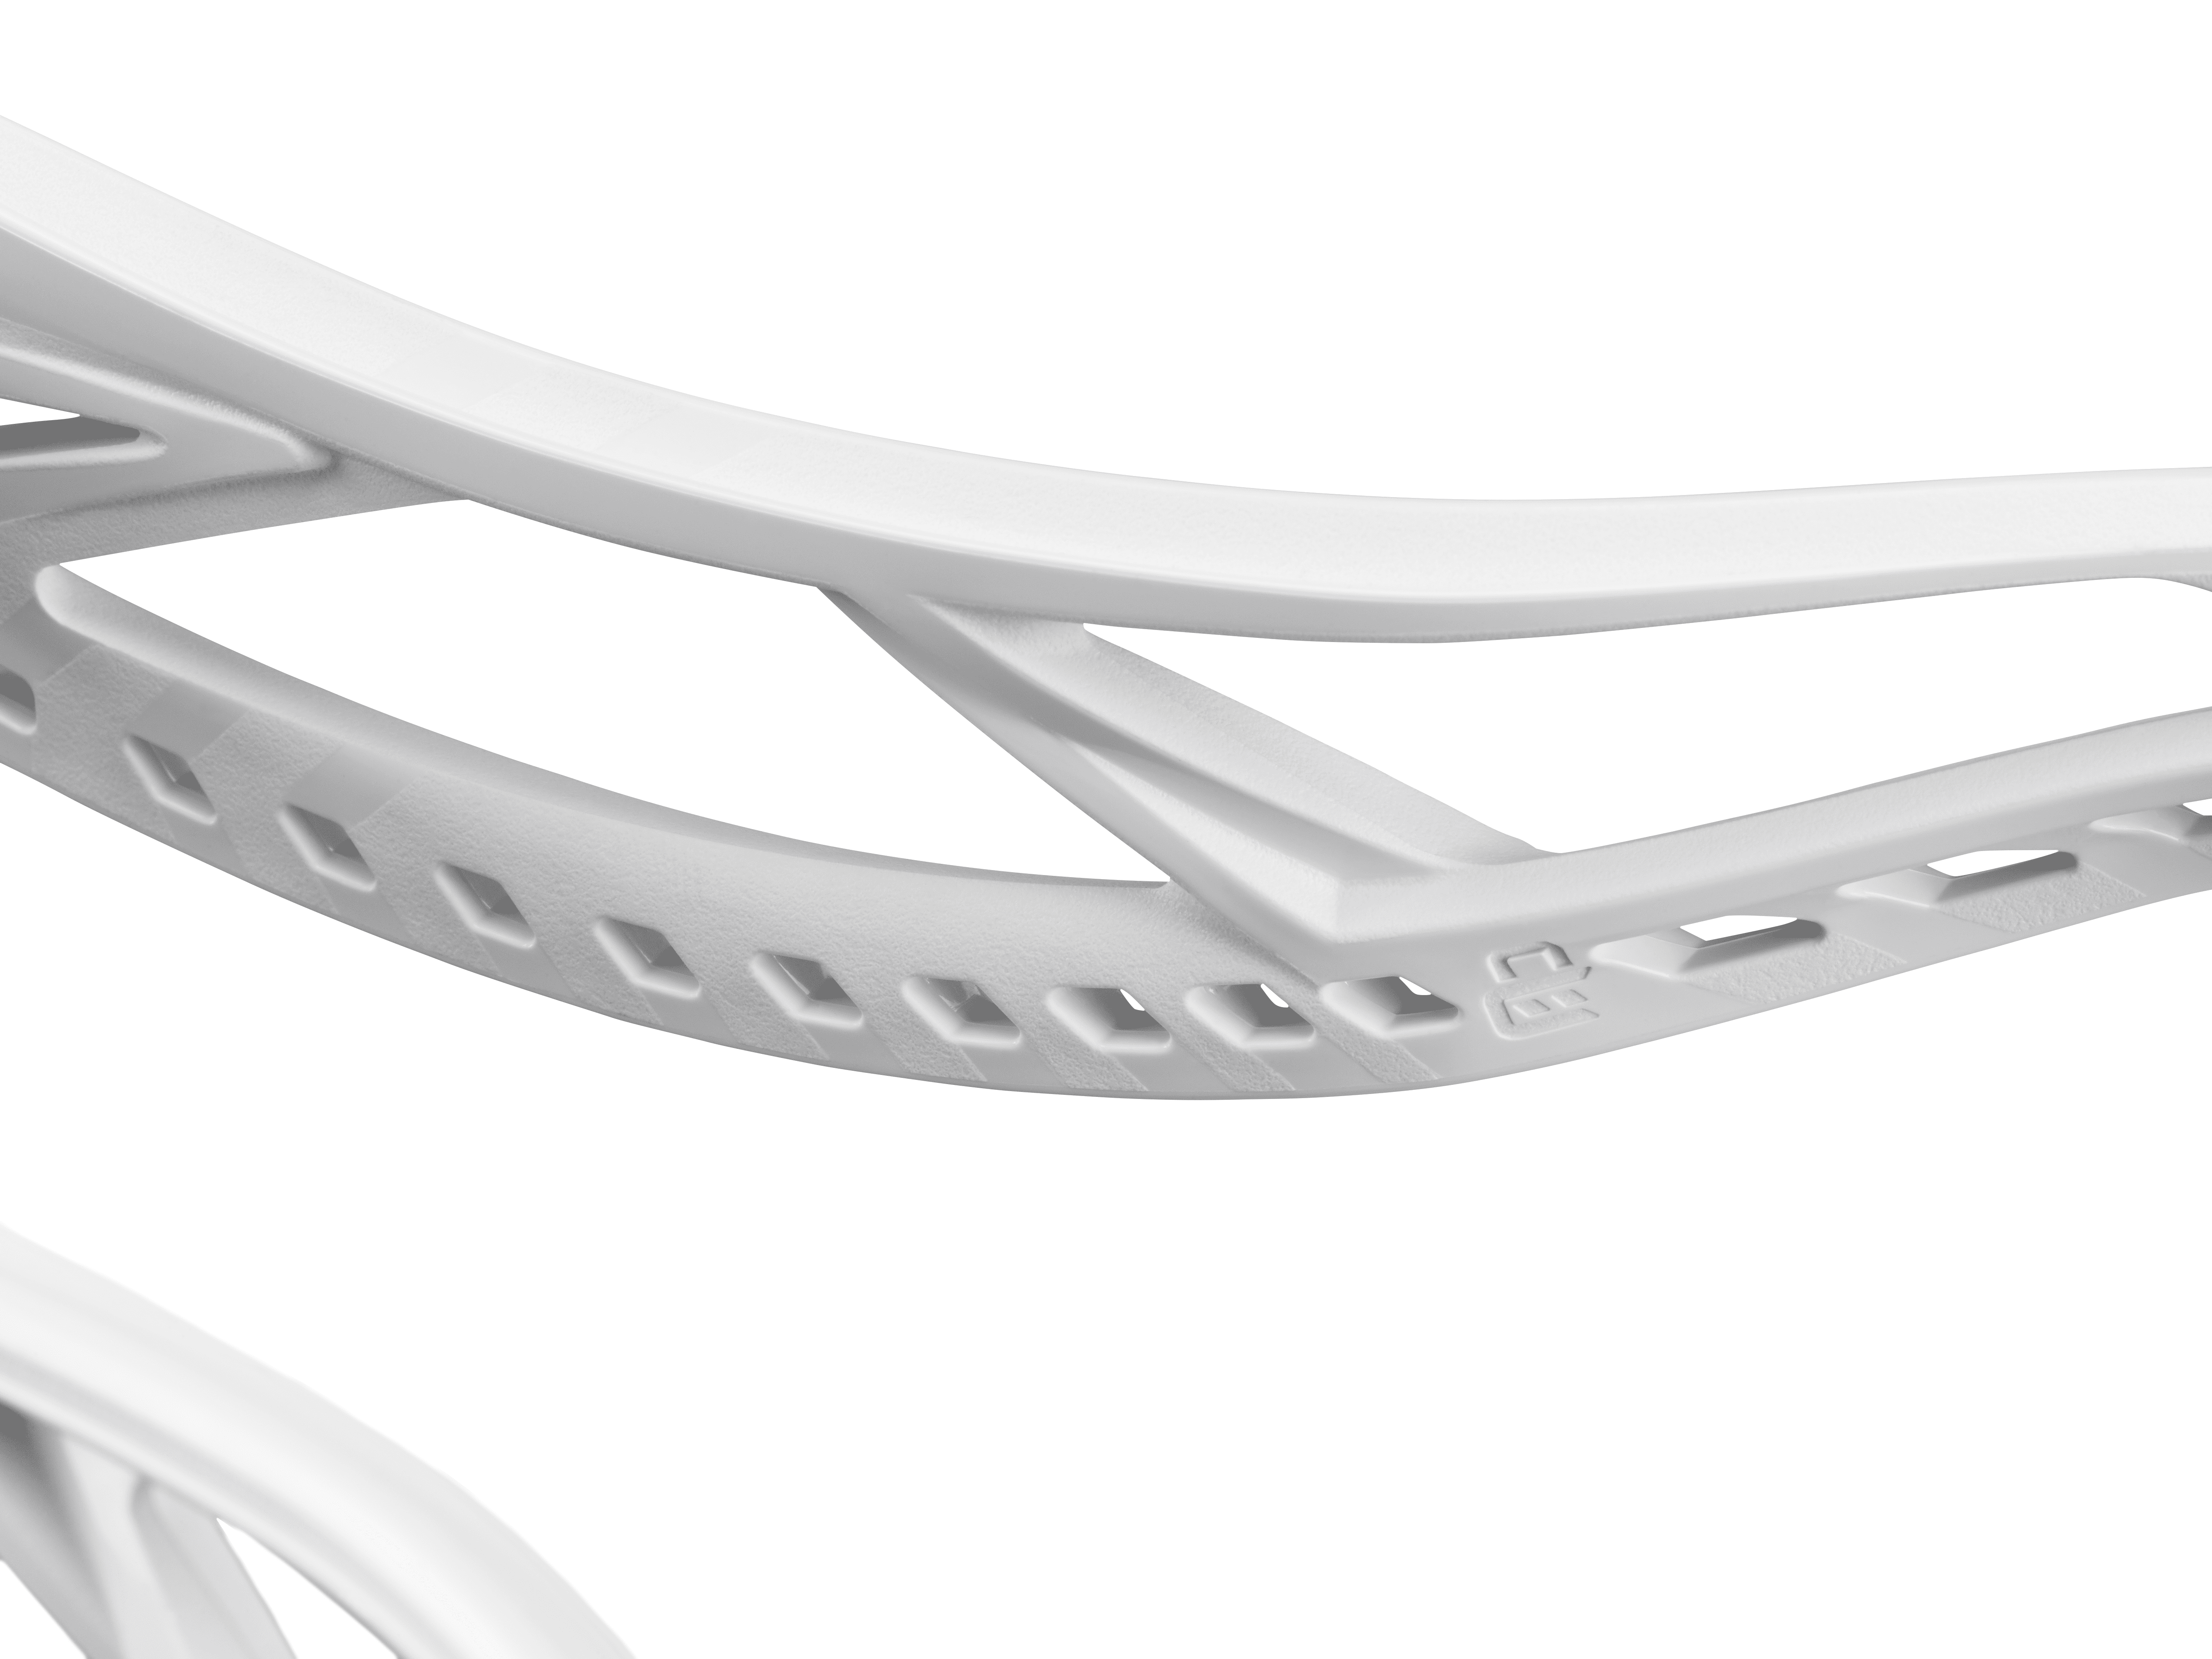 LOCK_HEAD_FACEOFF_WHITE_UNSTRUNG_TENSIONLOCK_DETAIL-1.png